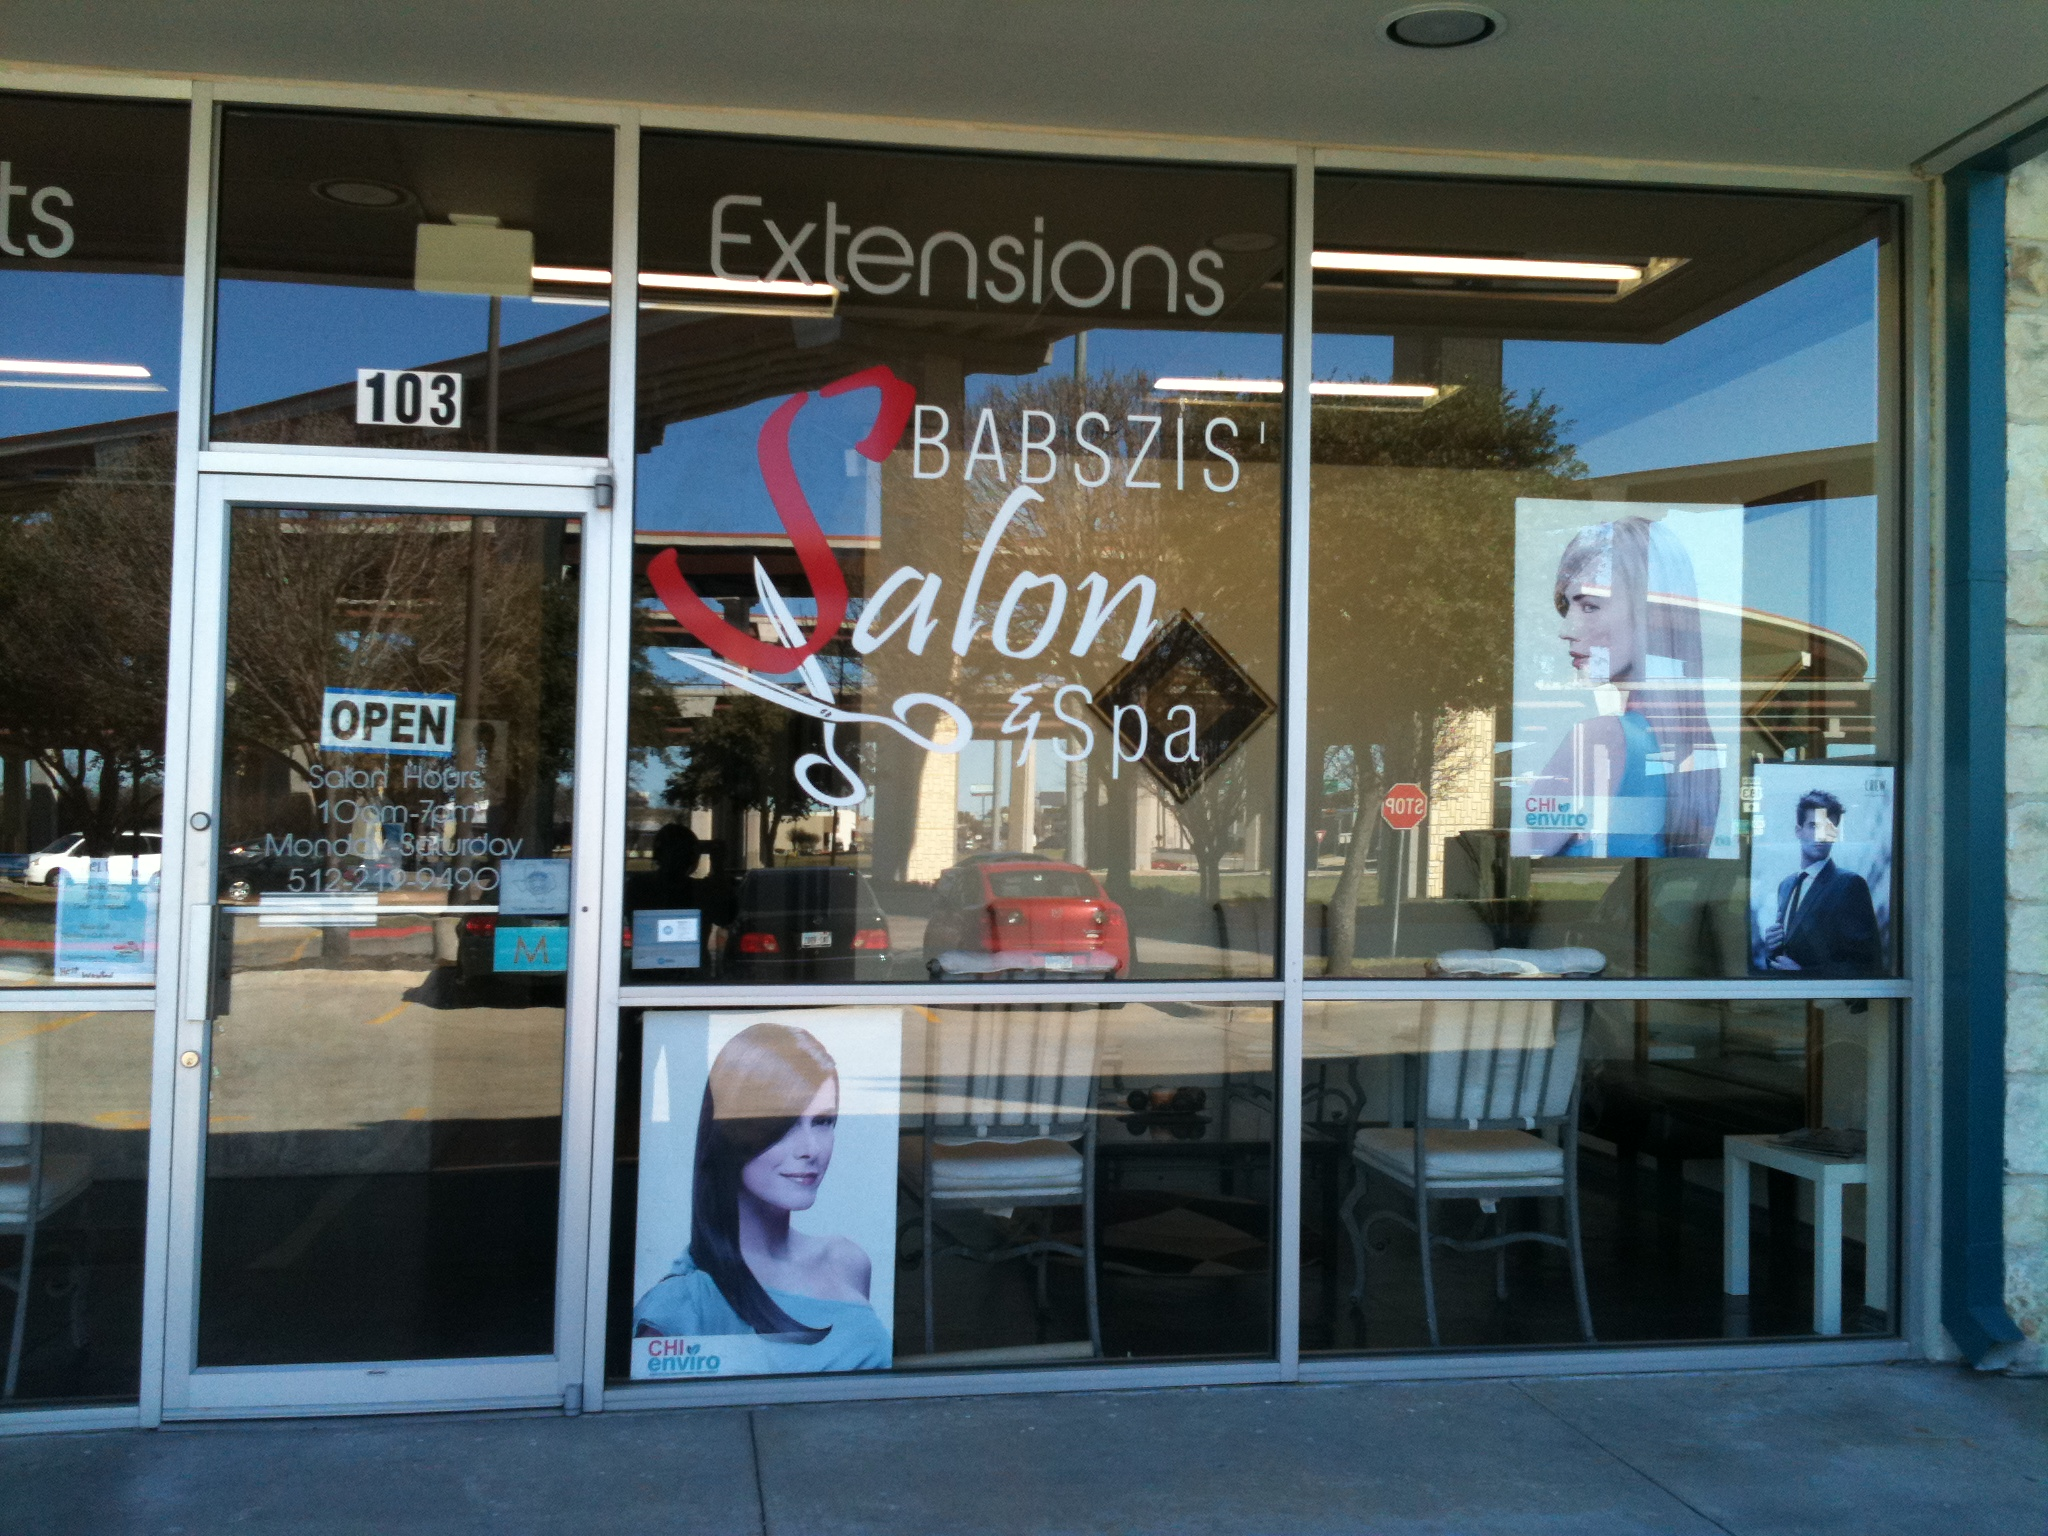 Babszis Hair Salon And Spa: Austin, TX  Haircut  Book Online